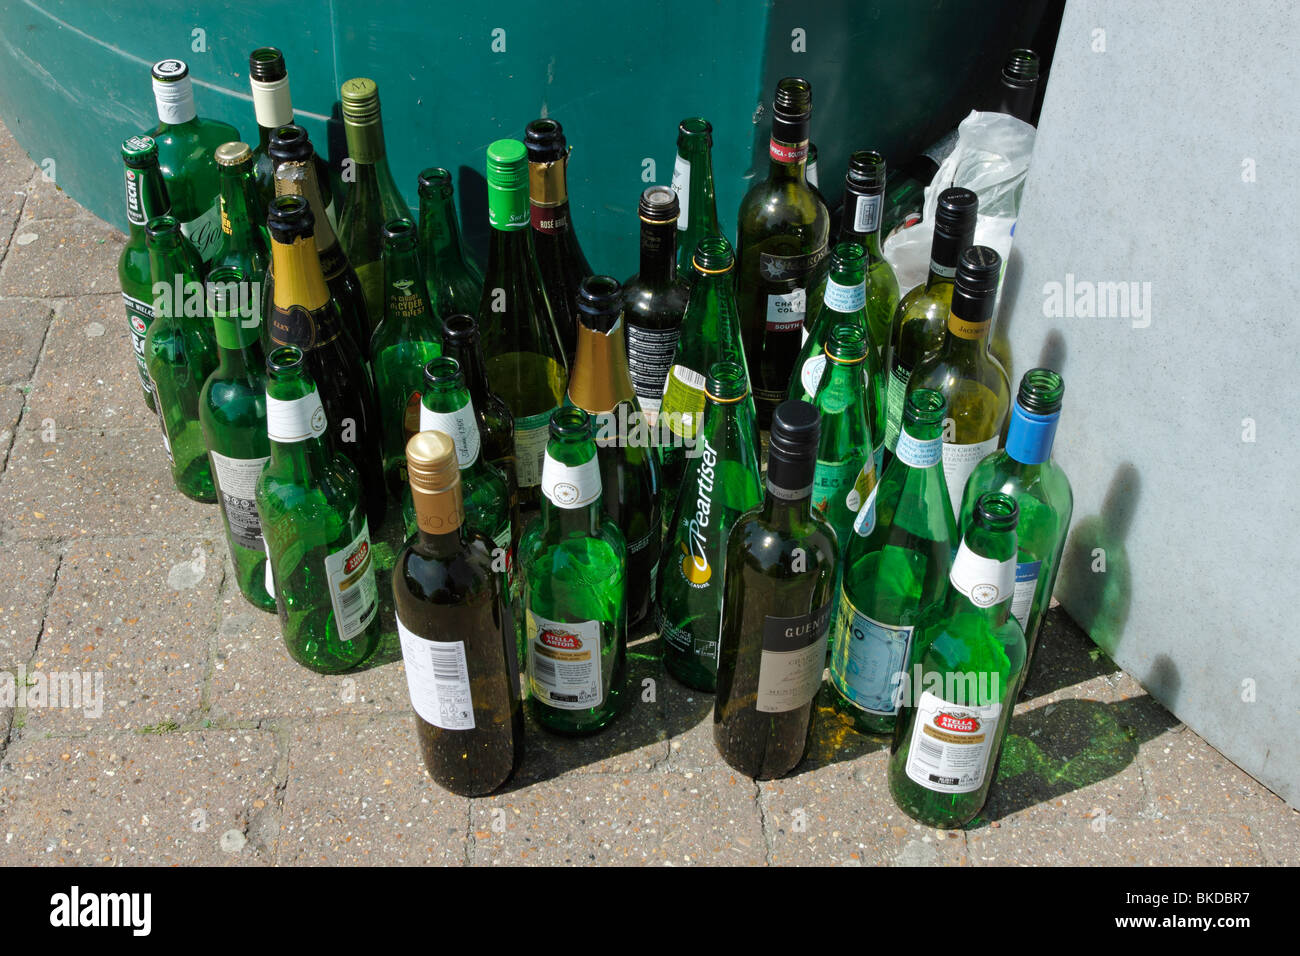 Lots of empty beer and wine bottles beside bottle banks. - Stock Image